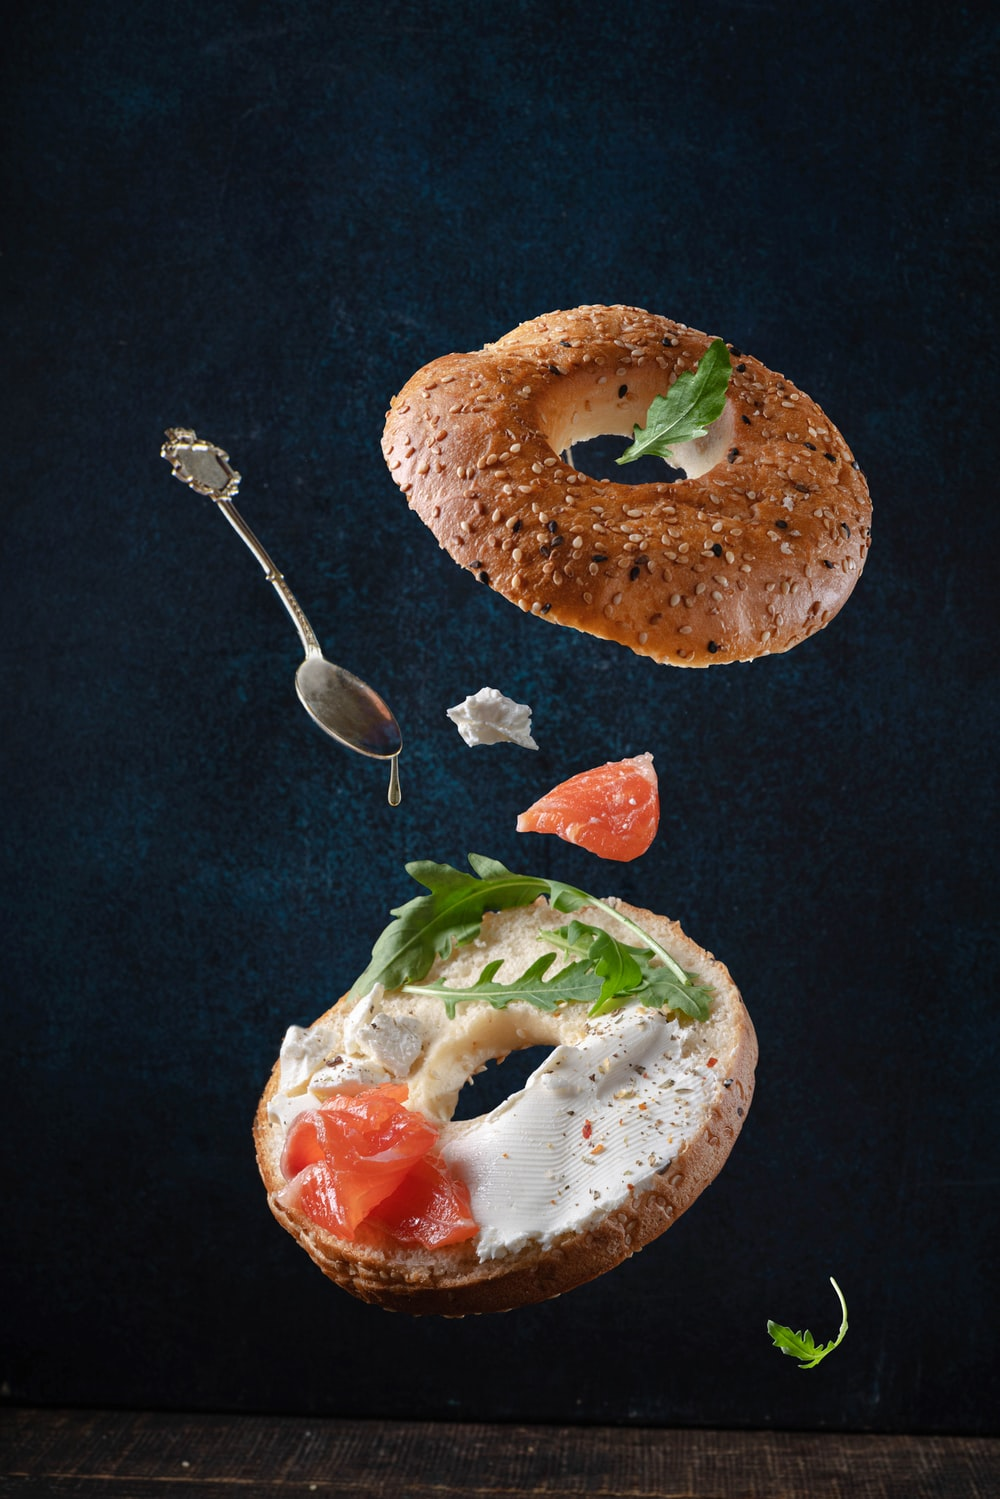 bread with sliced tomato and green vegetable on black textile